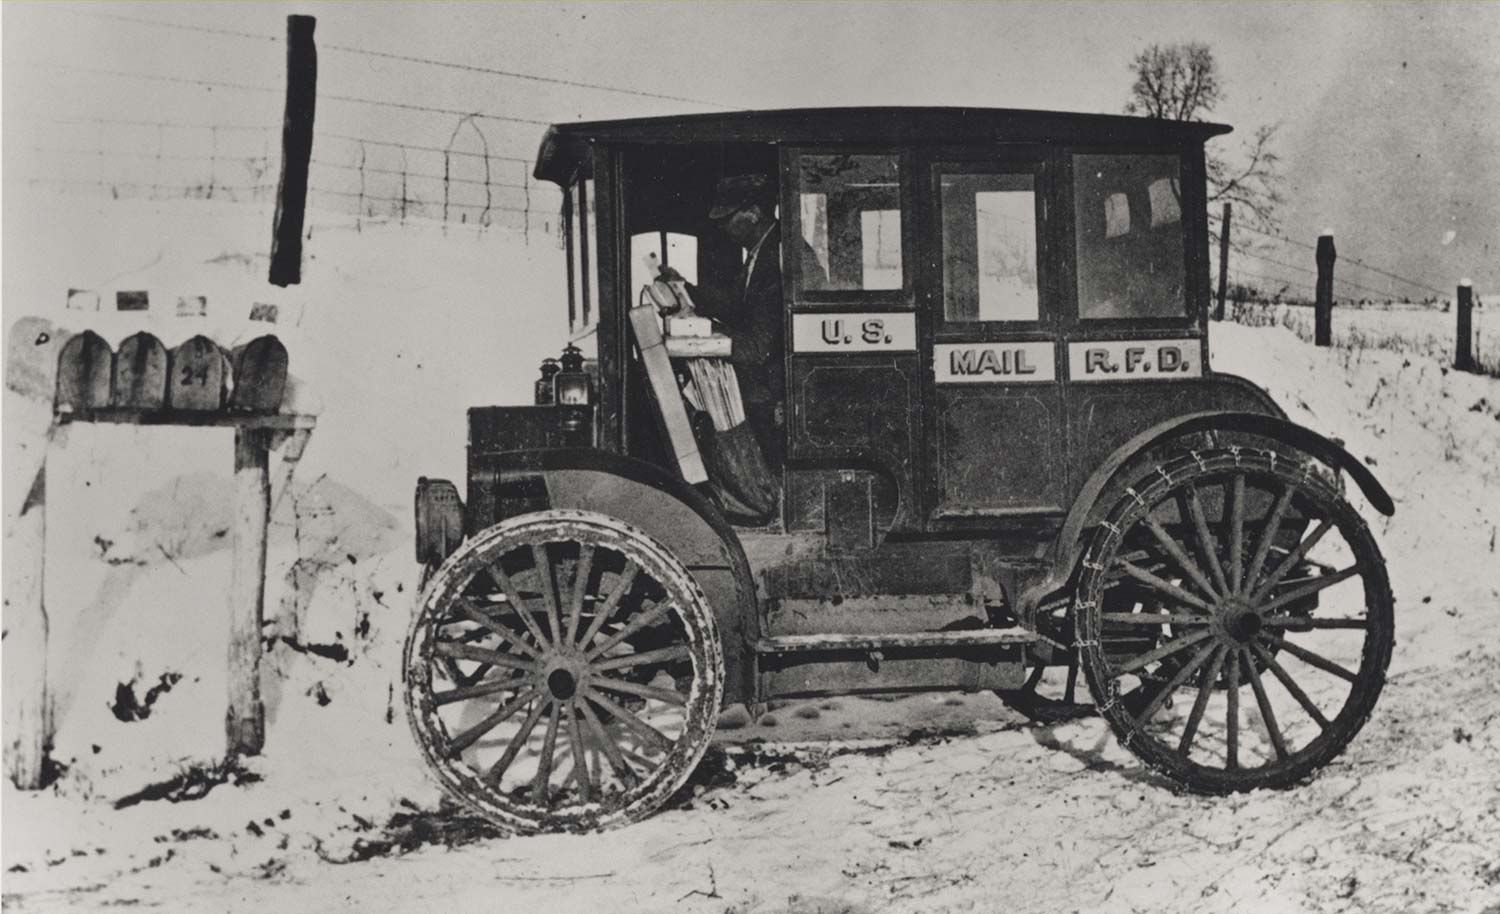 Rural_carrier_in_automobile_at_mailboxes,_c.1910